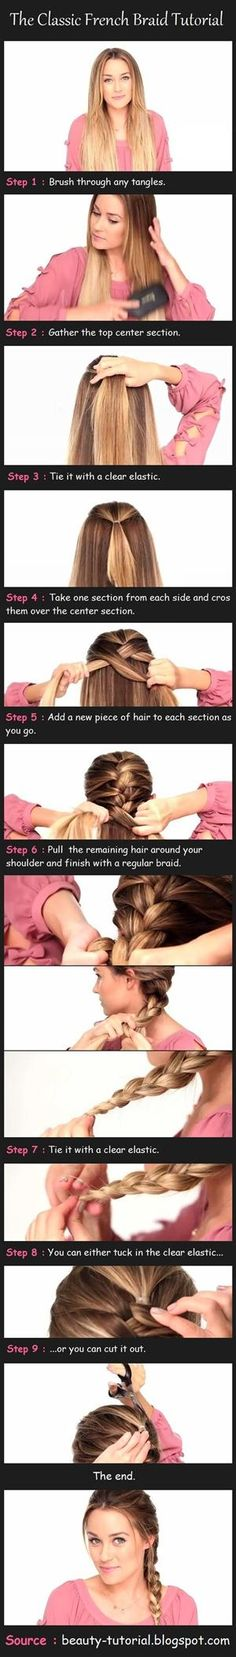 Great trick to french braiding your own hair... I've always wanted to know how to French braid  Follow sracln97!